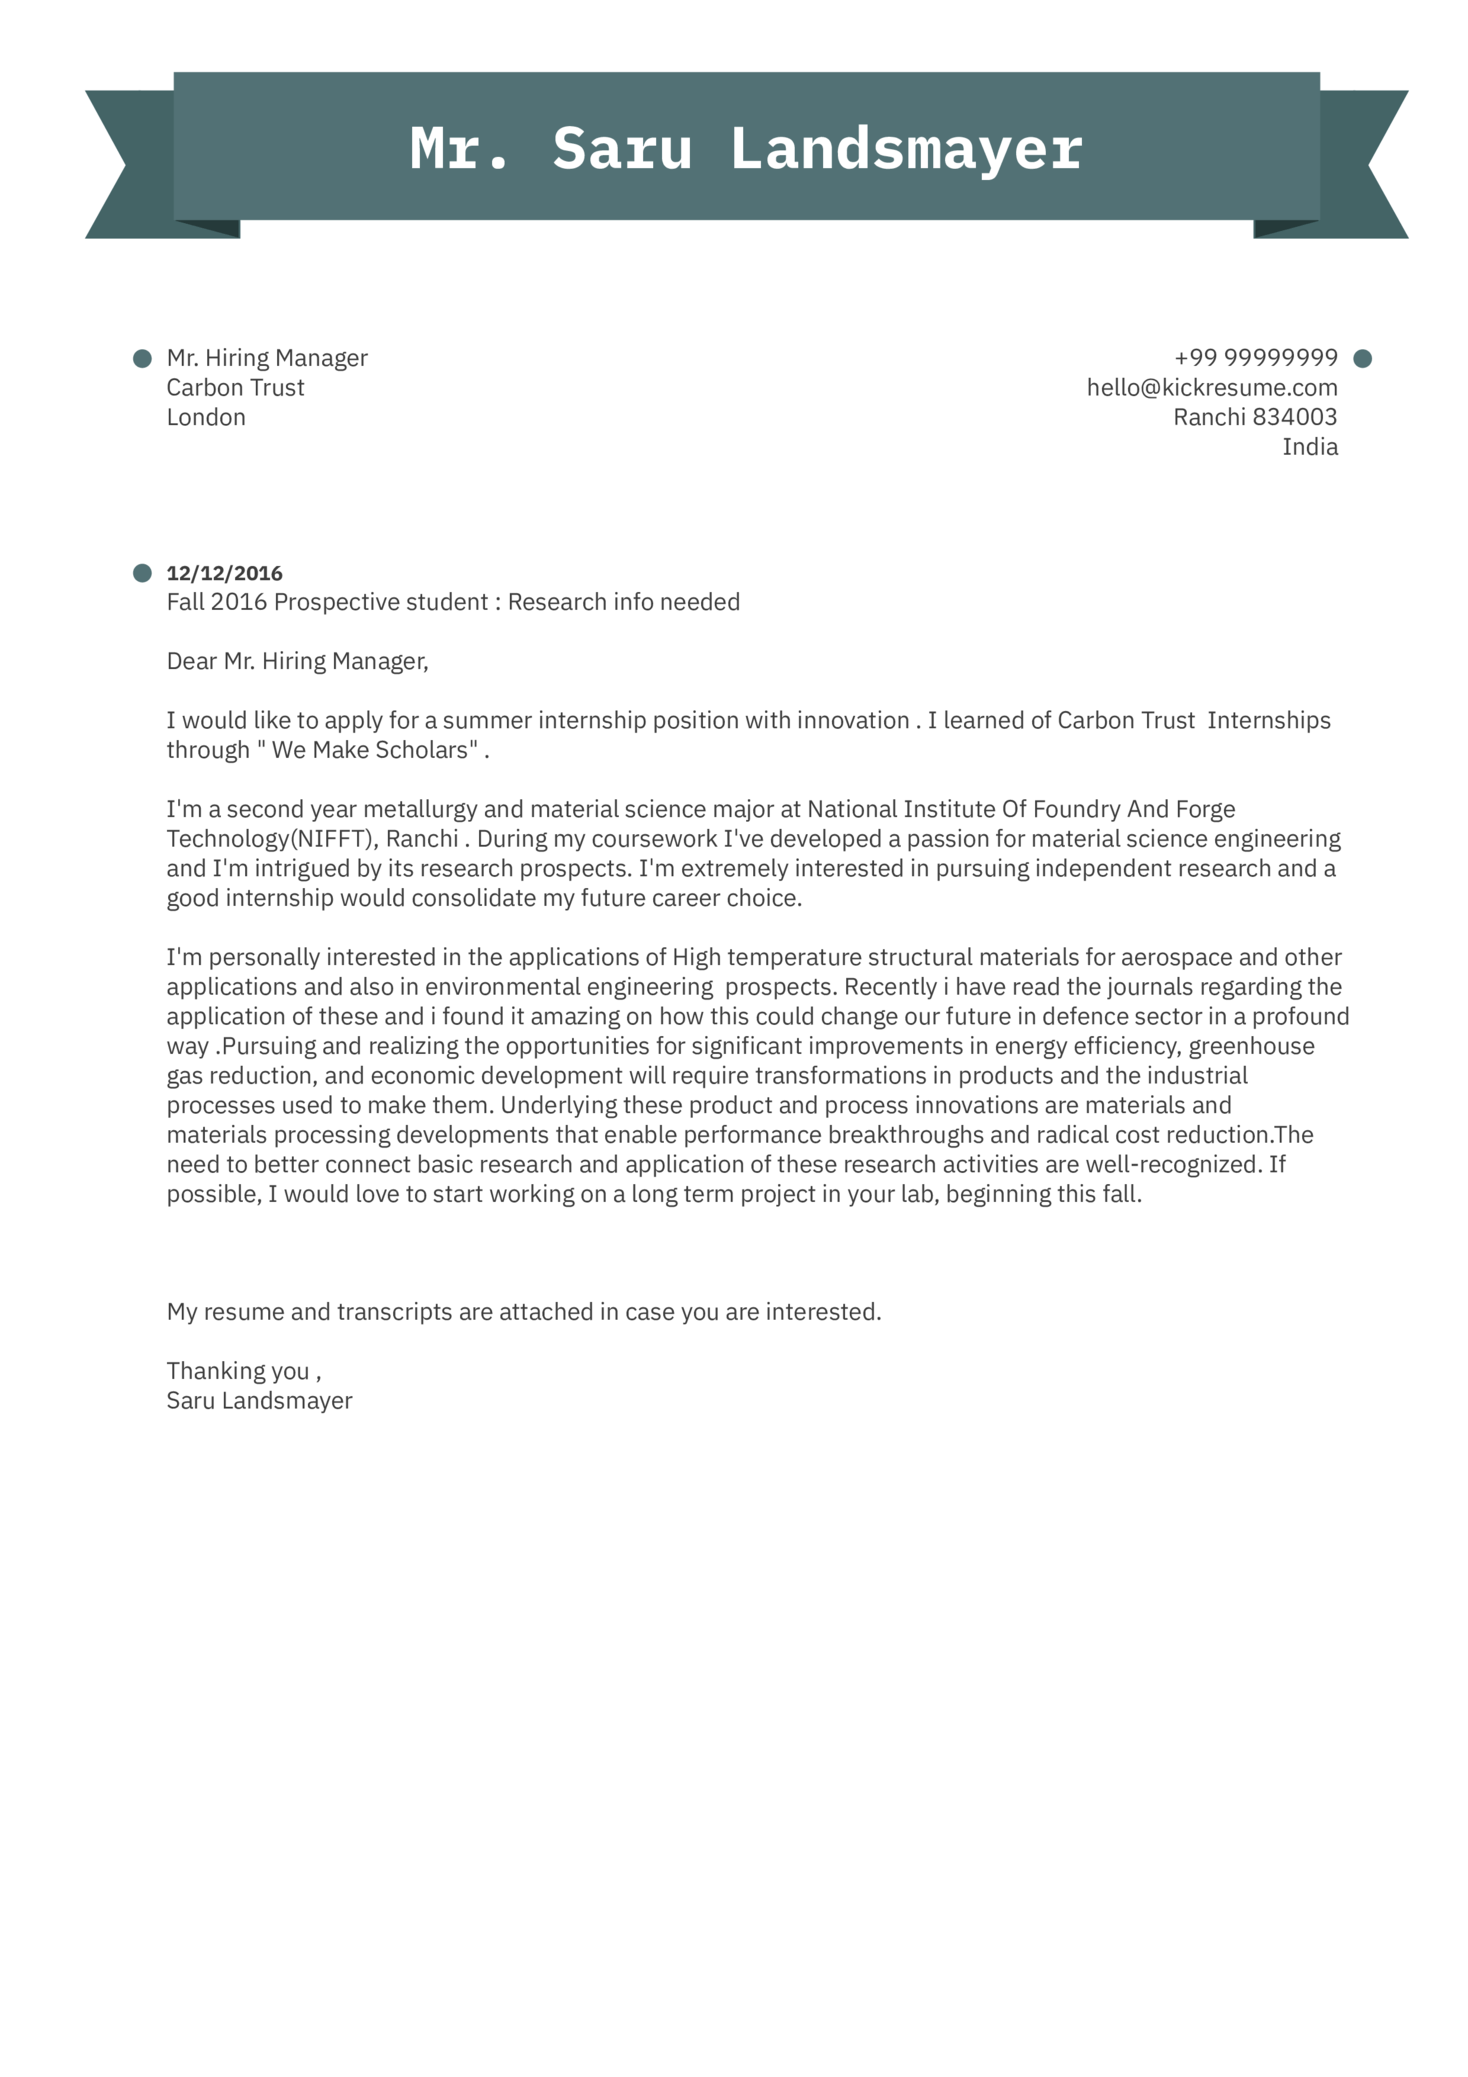 Research Intern Cover Letter Example